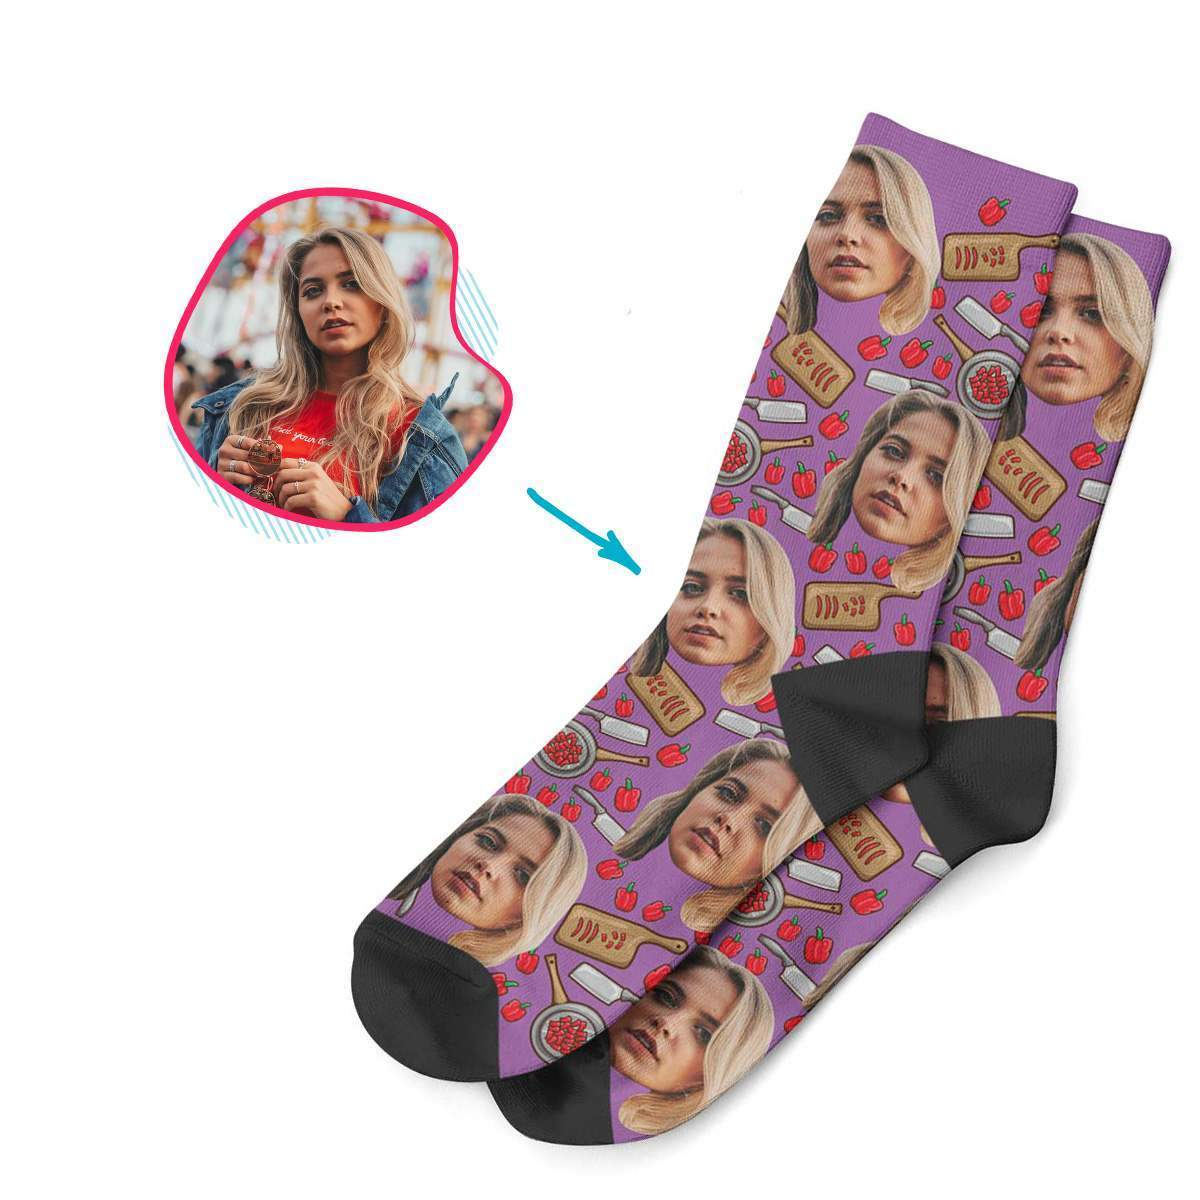 purple Сooking socks personalized with photo of face printed on them